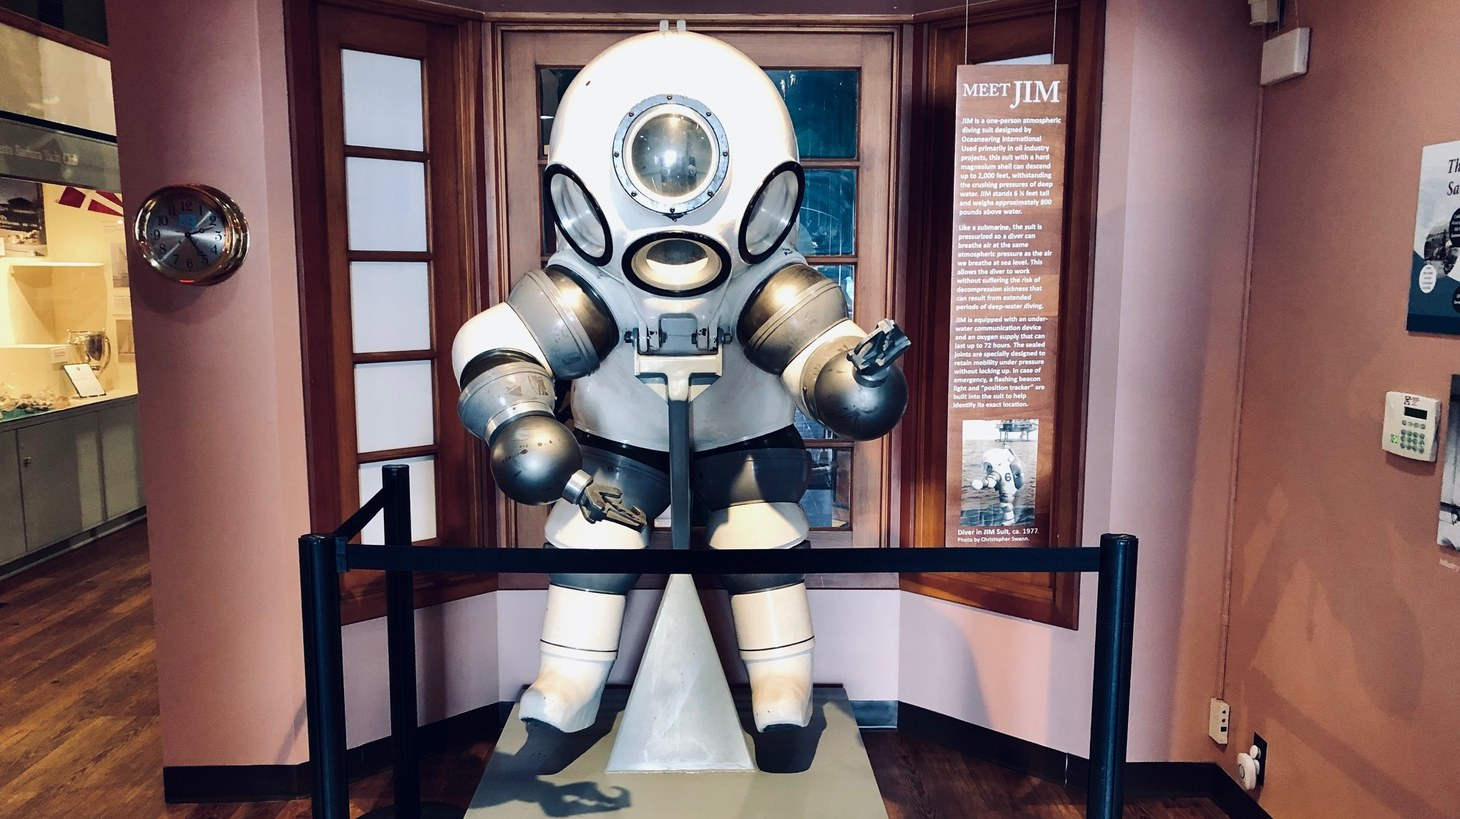 This one-person atmospheric diving suit displayed at the Santa Barbara Maritime Museum is used primarily in oil industry projects. The suit has a hard magnesium shell and can descend 2000 ft below the surface. It weighs nearly 800 pounds above water.